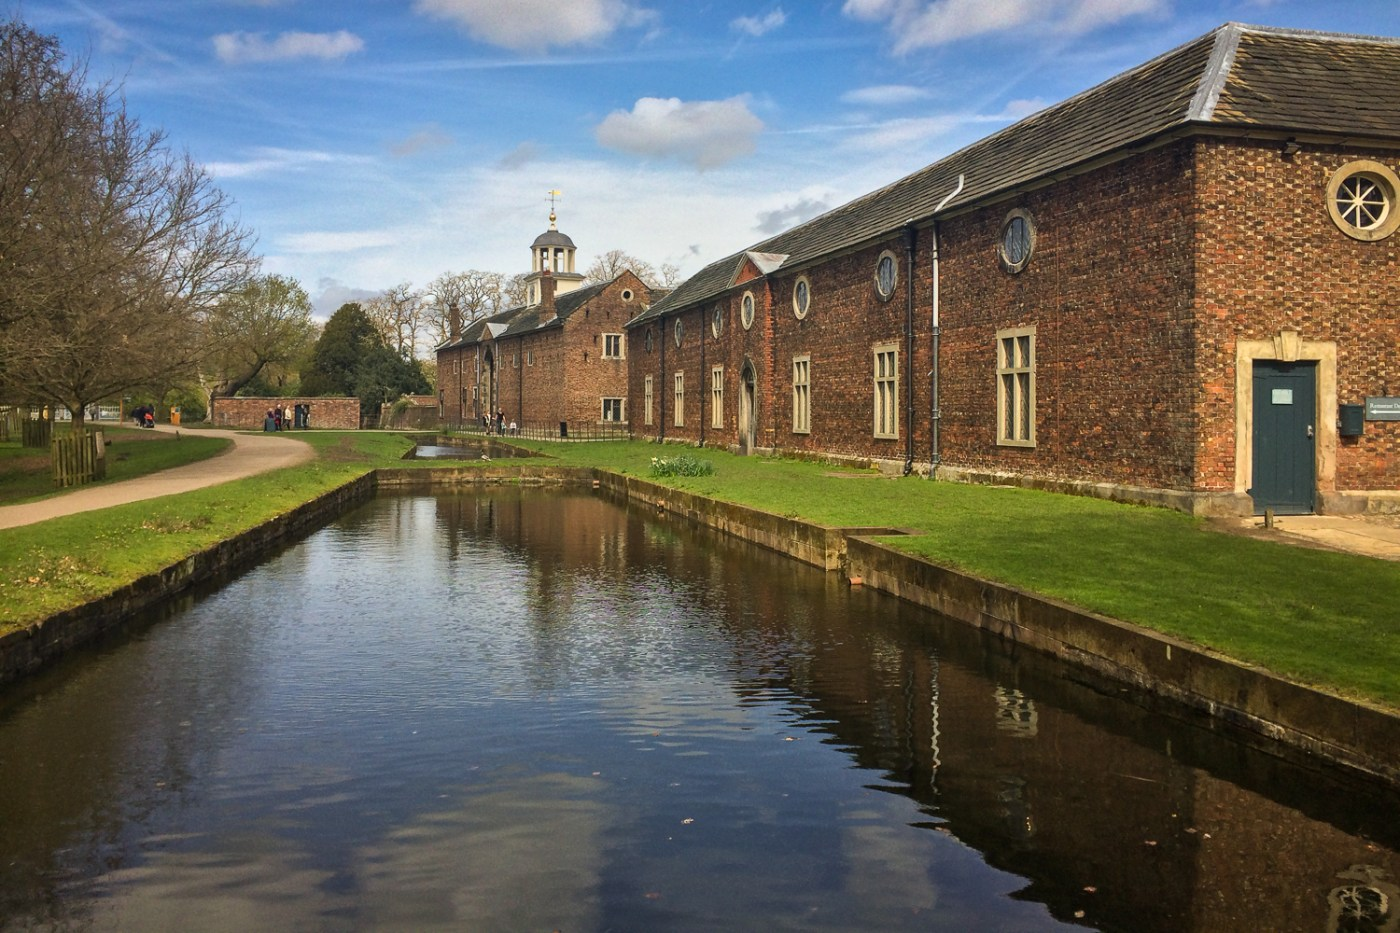 Dunham Massey stables and carriage hall